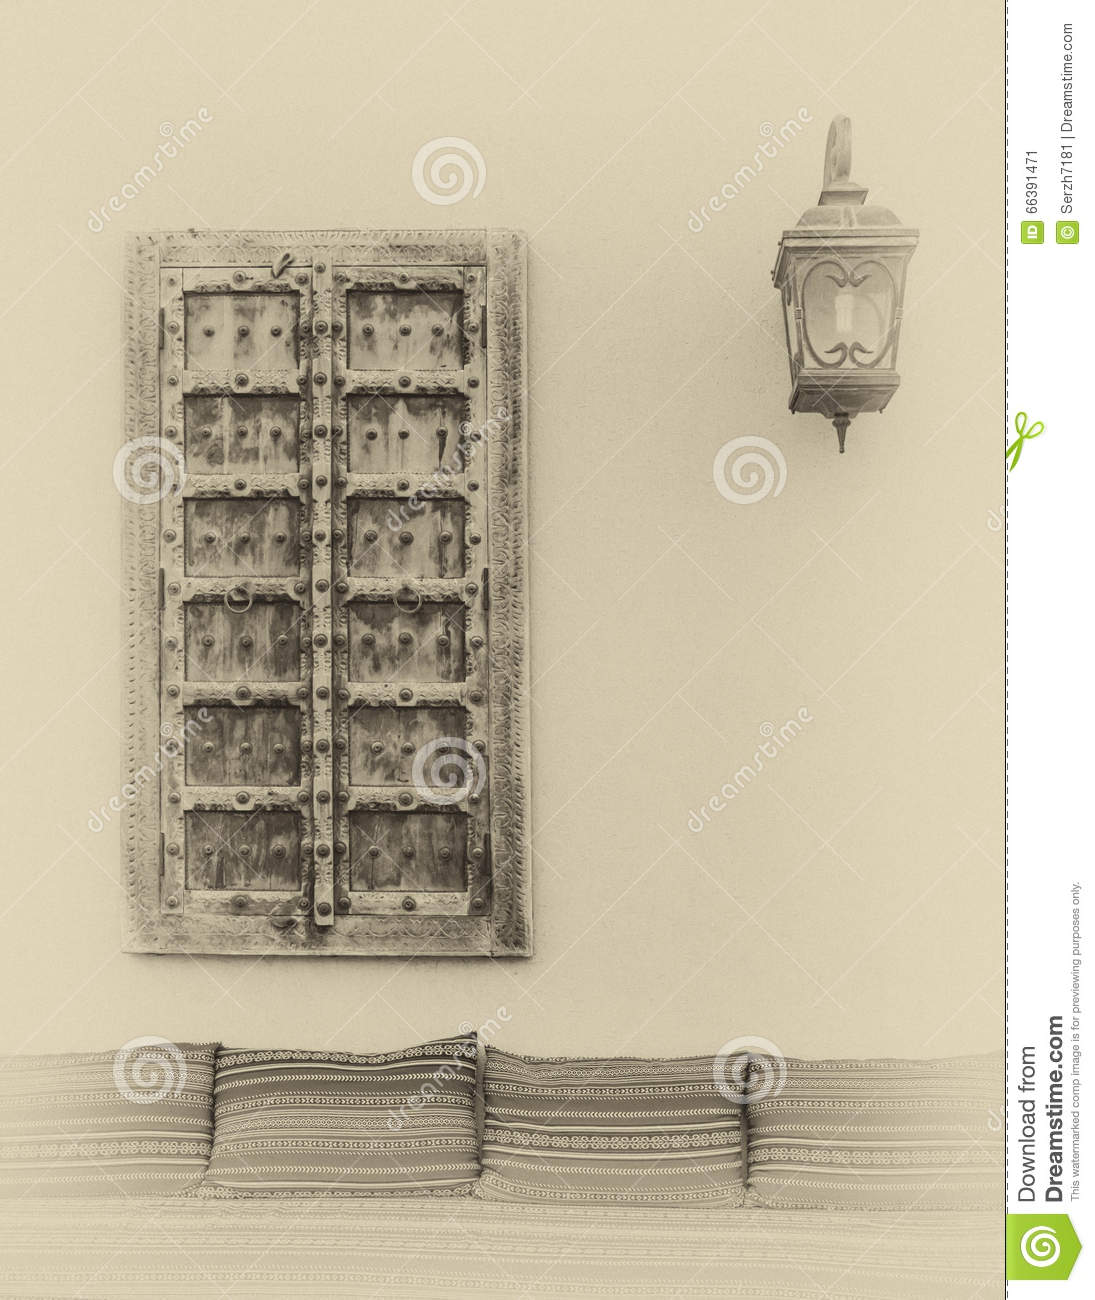 Wall Lamps Uae : The Wall With Window And Lamp Stock Illustration - Image: 66391471